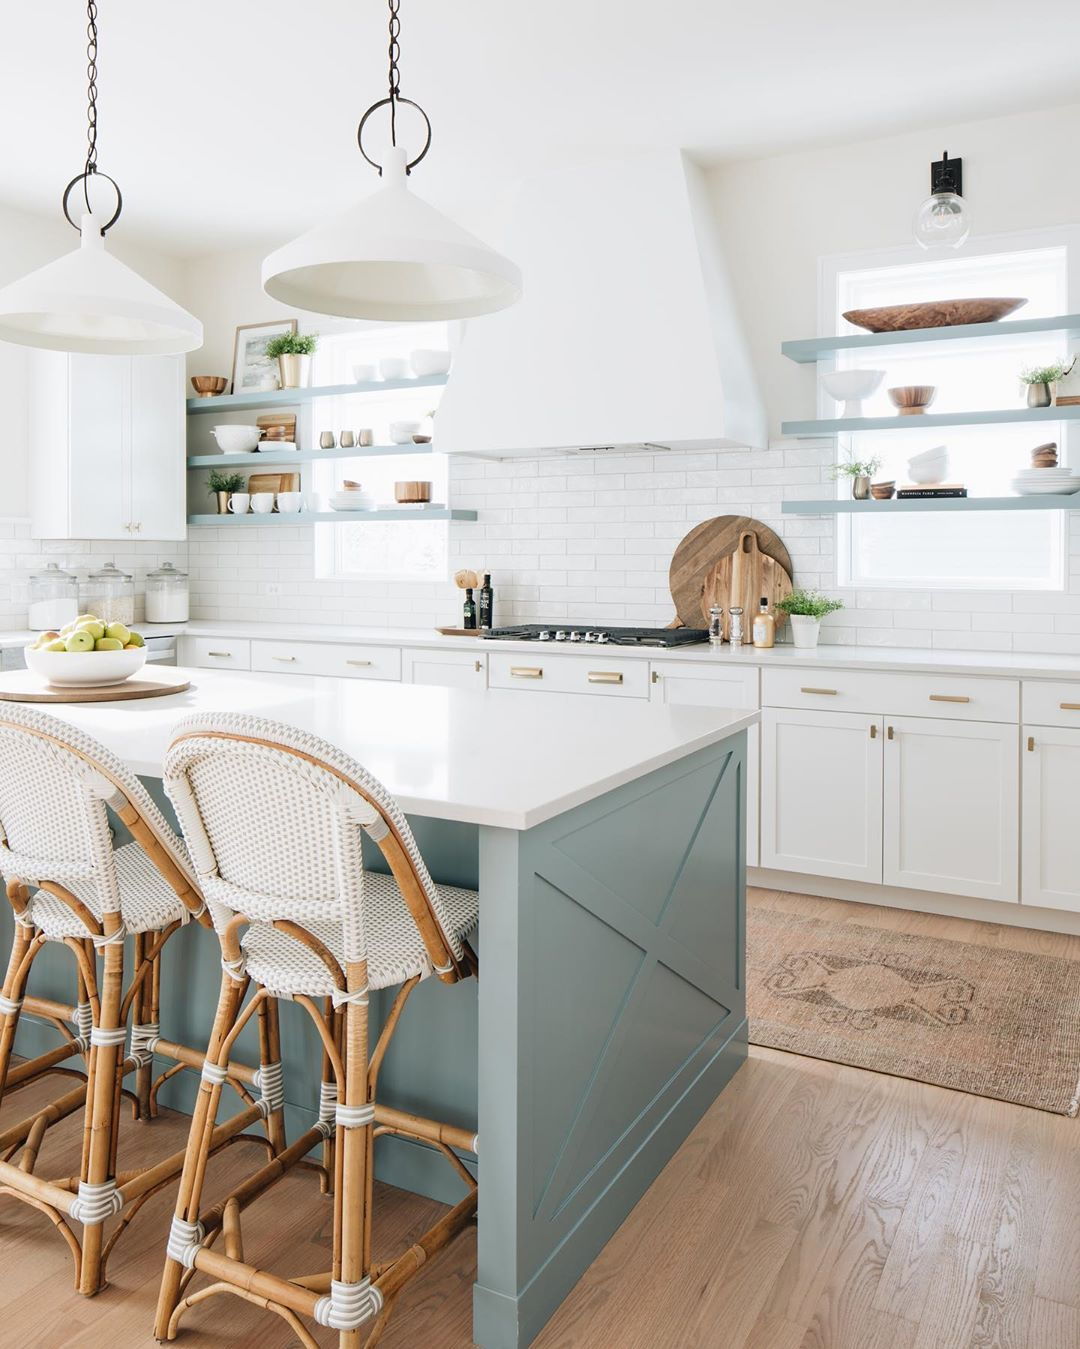 We Are Loving The Summer Vibes In This Bright Kitchen Design By Timber Trails Dc Photo By Stoffer Coastal Kitchen Decor Kitchen Trends Beach House Kitchens